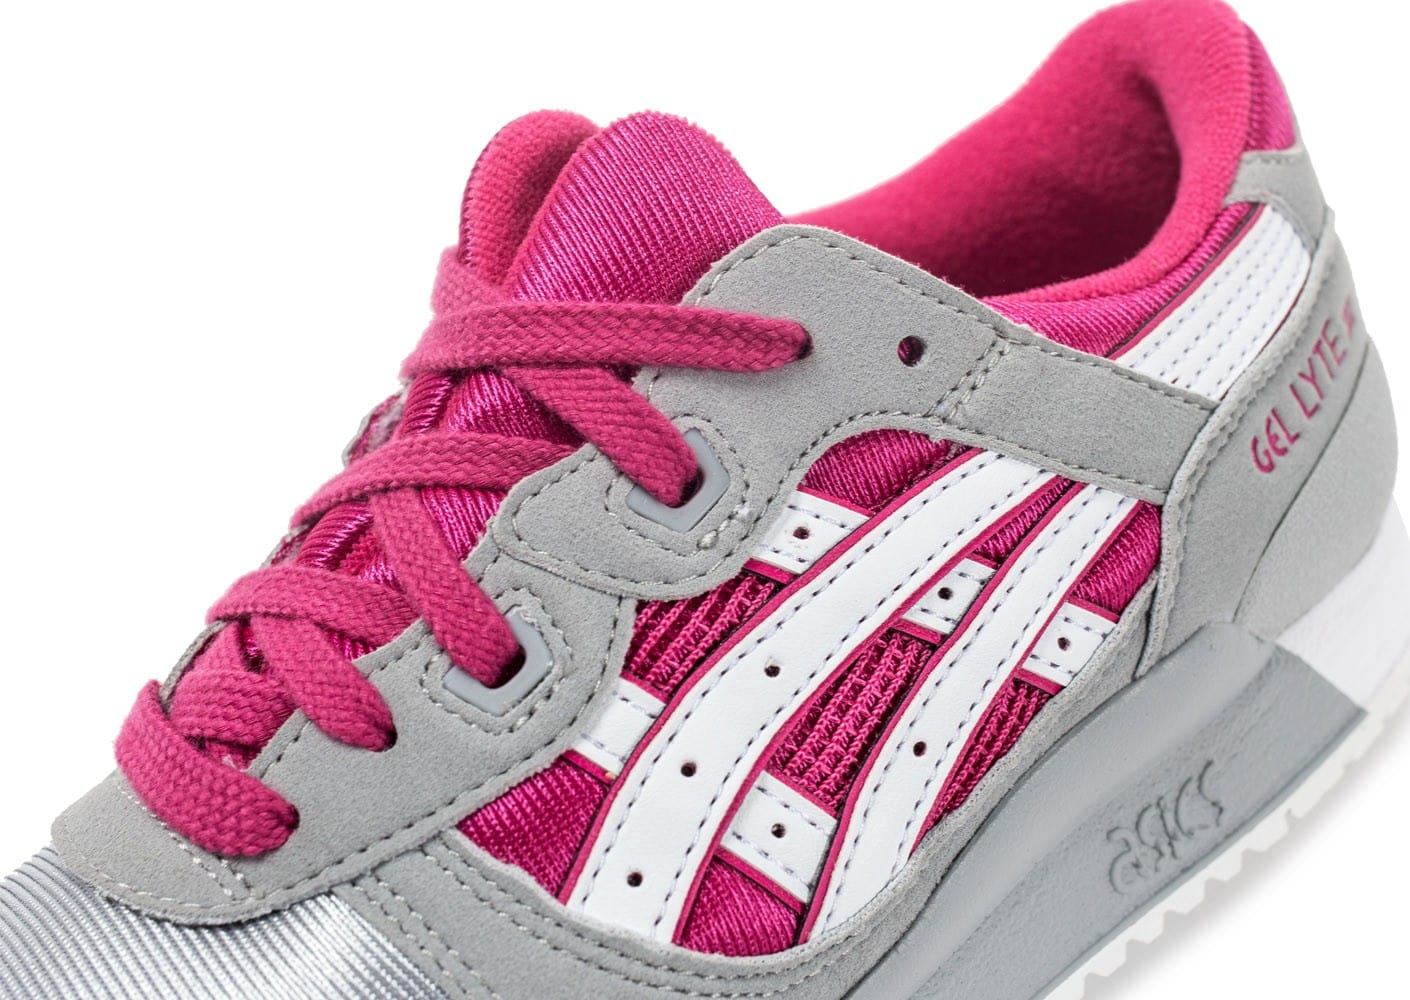 Iii Blanche Les Gel Chaussures Rose Junior Toutes Lyte Et Asics wUOpAxqO